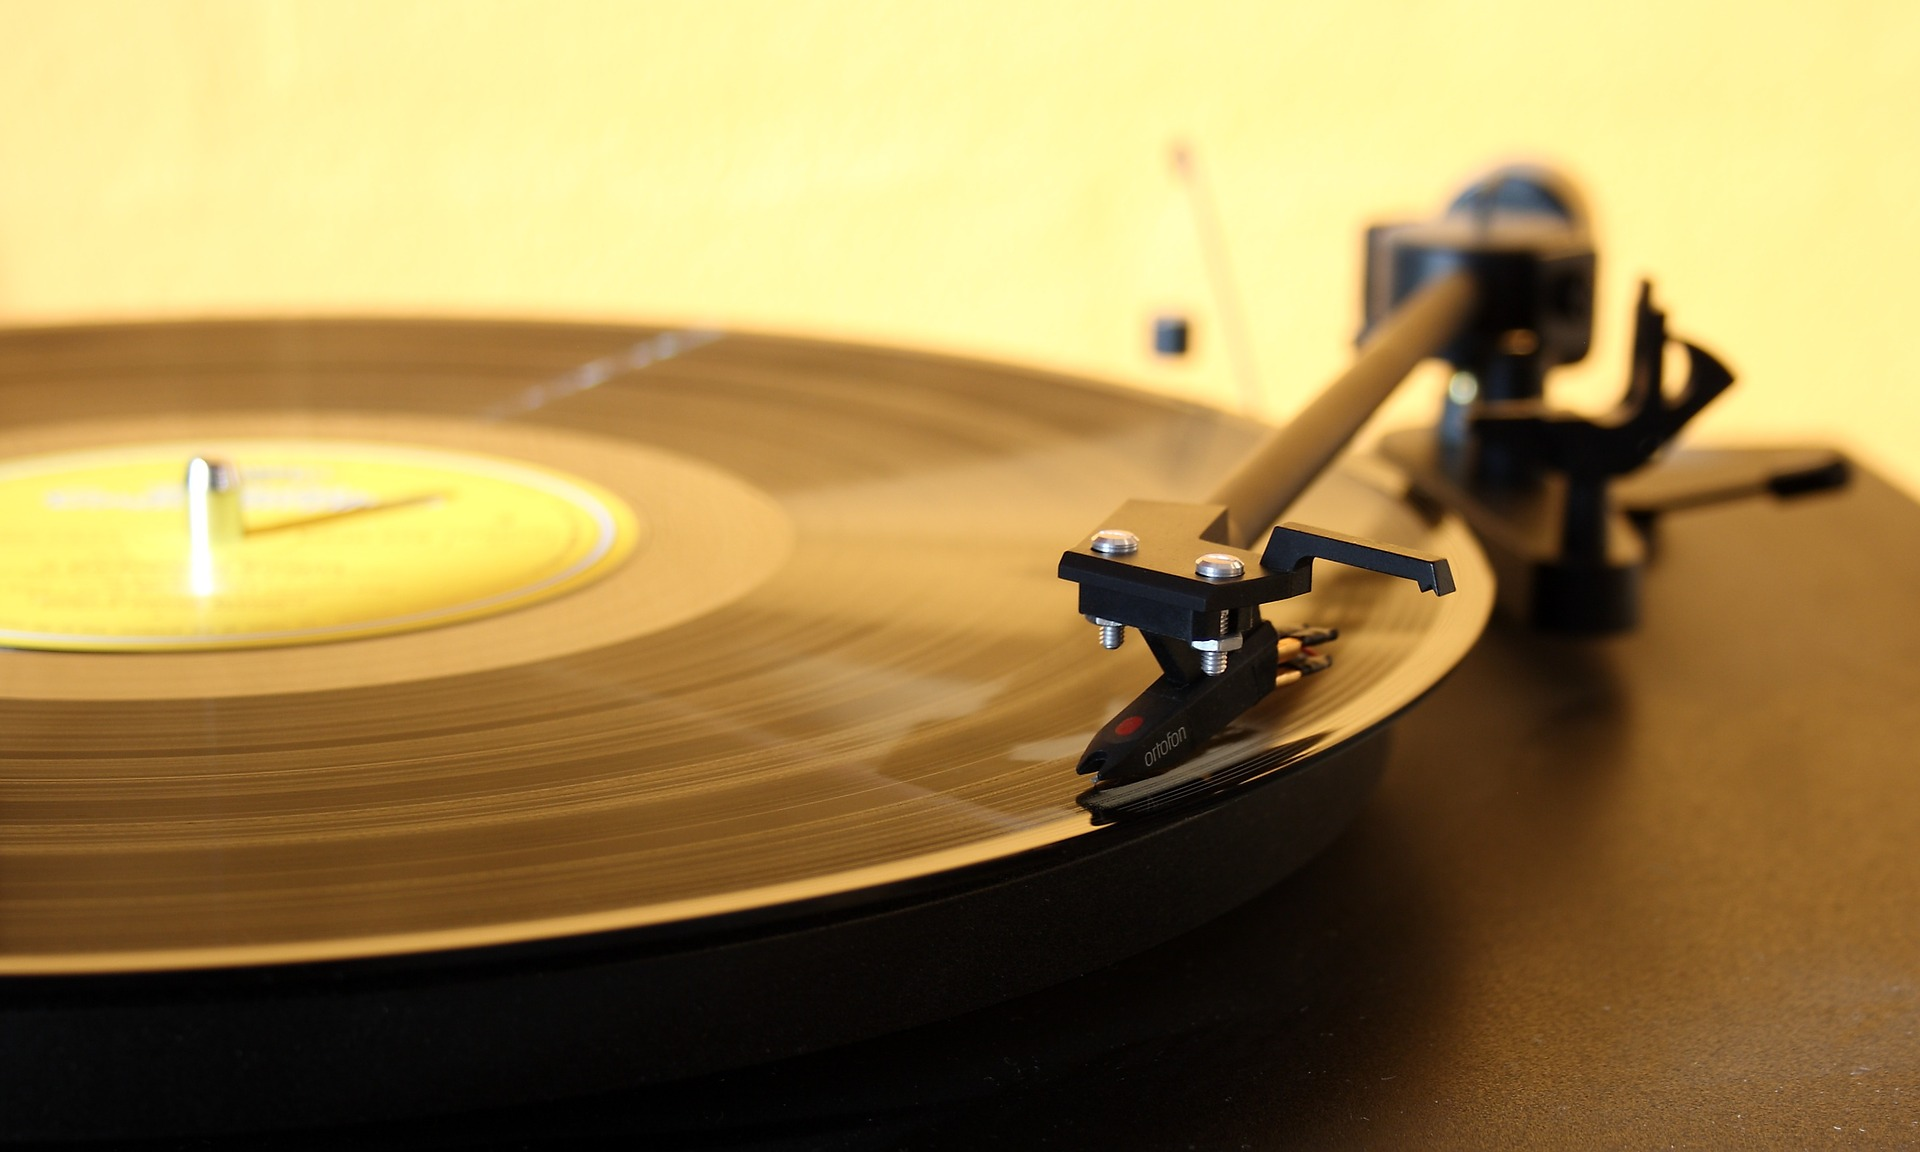 s-record-player-1224409_1920